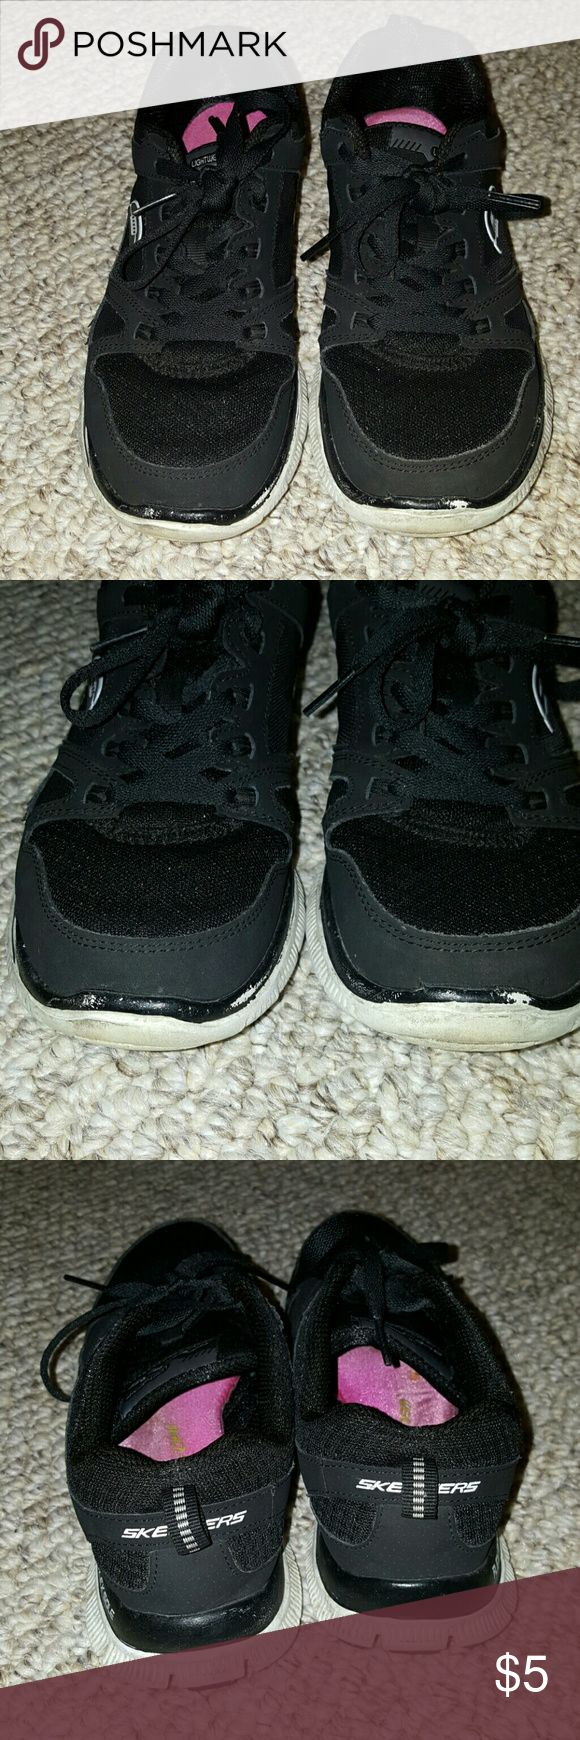 Sketchers sneakers Used scuffs on front in pic 2 Skechers Shoes